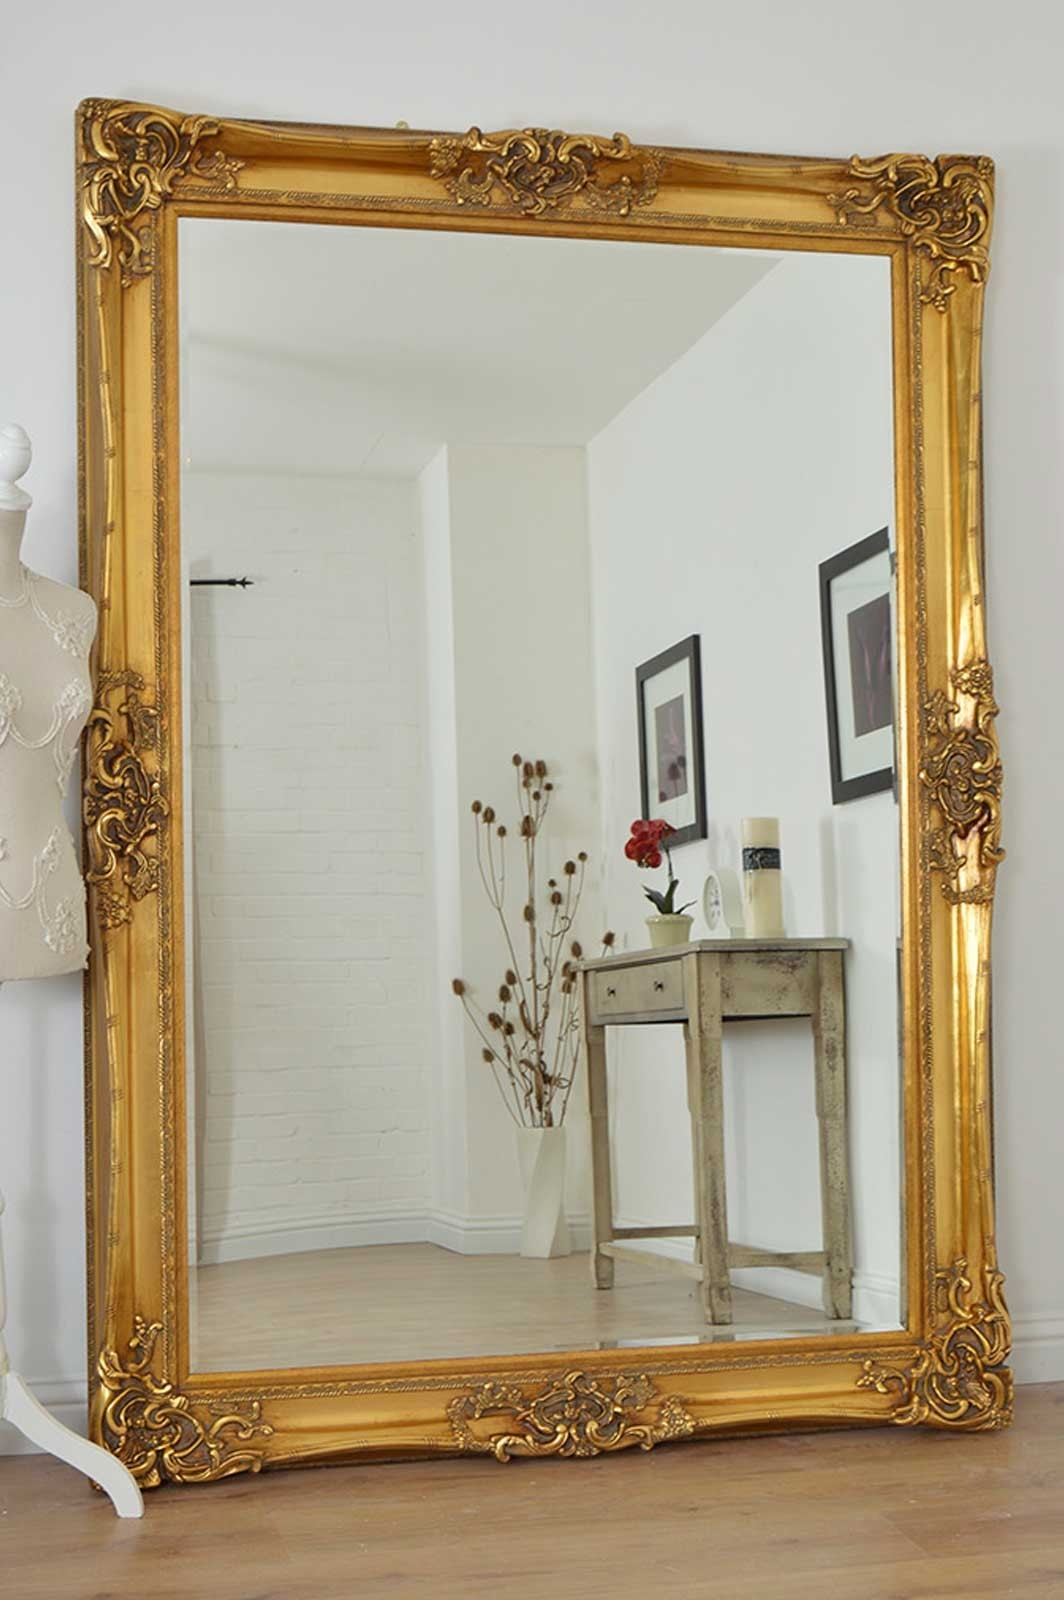 Large Gold Very Ornate Antique Design Wall Mirror 7ft X 5ft 213cm Regarding Vintage Floor Mirrors Large (Image 9 of 15)